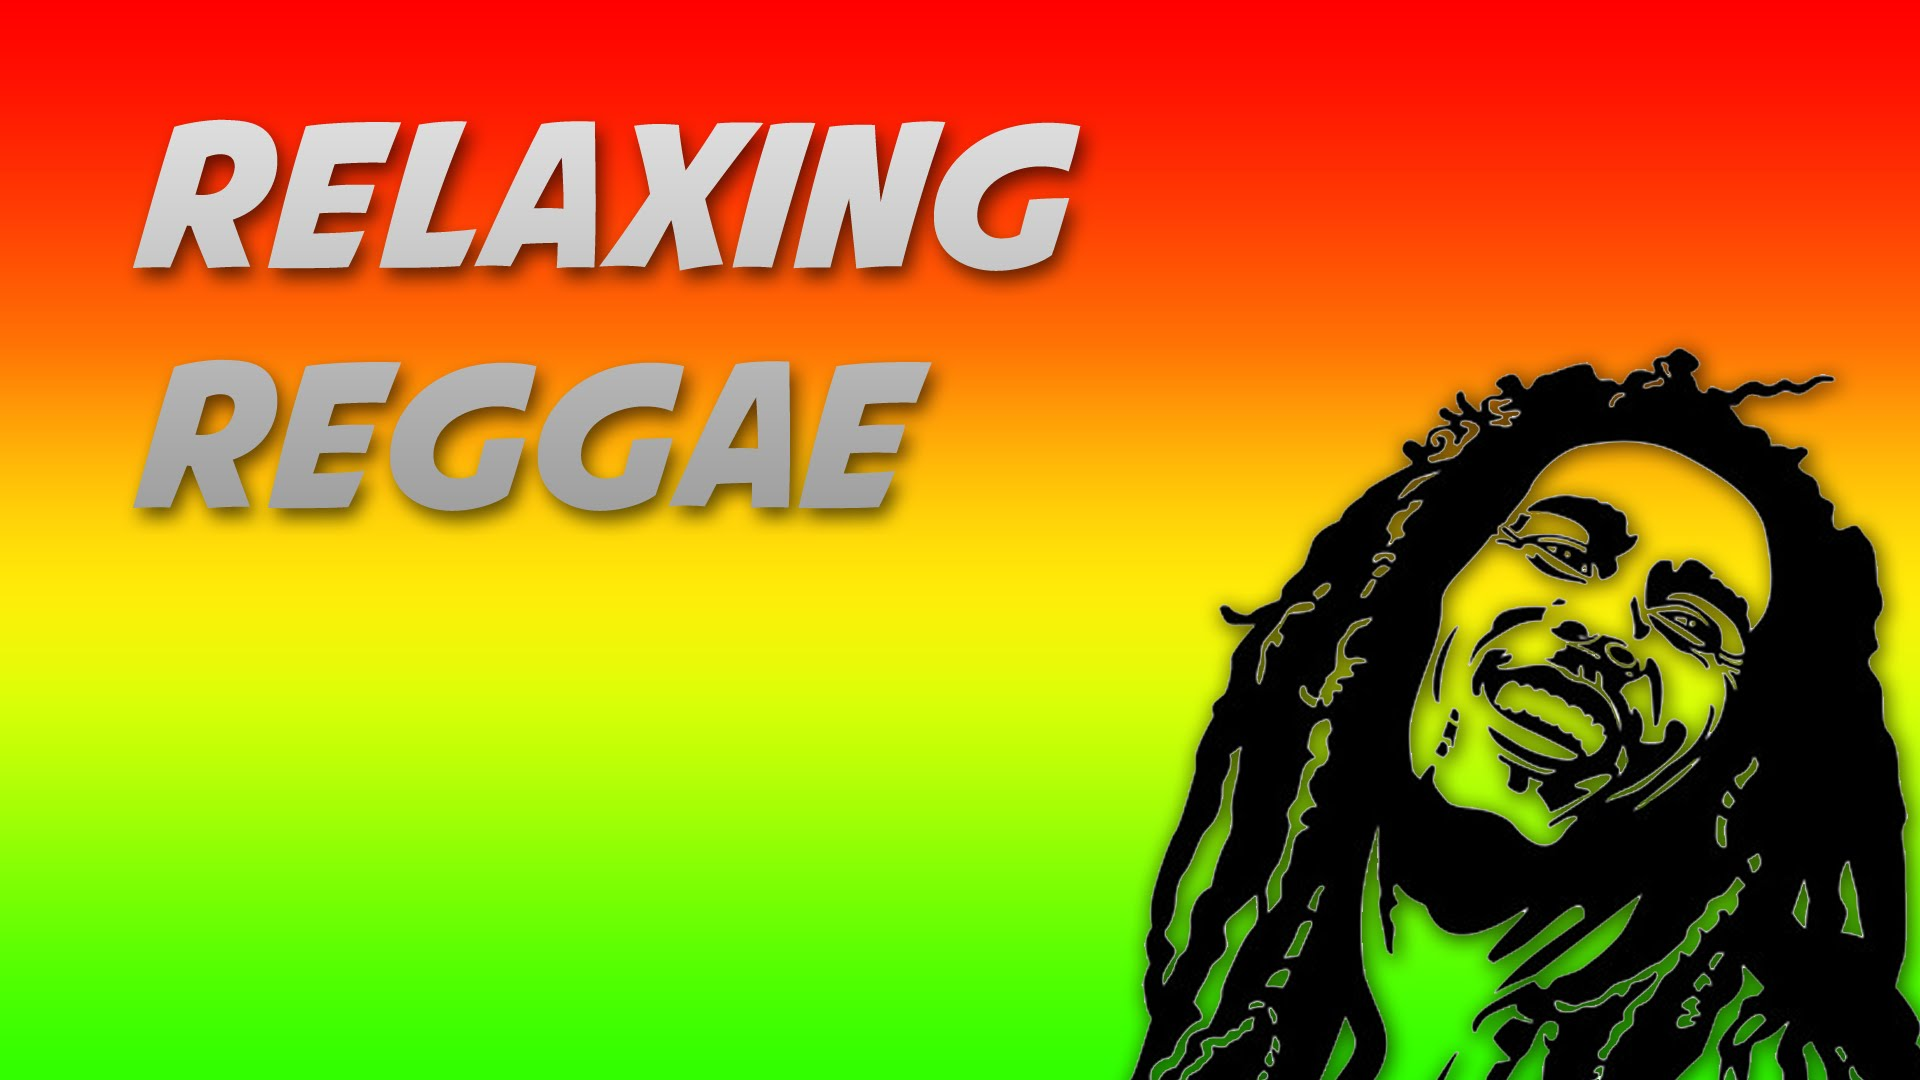 Relaxing Reggae Music